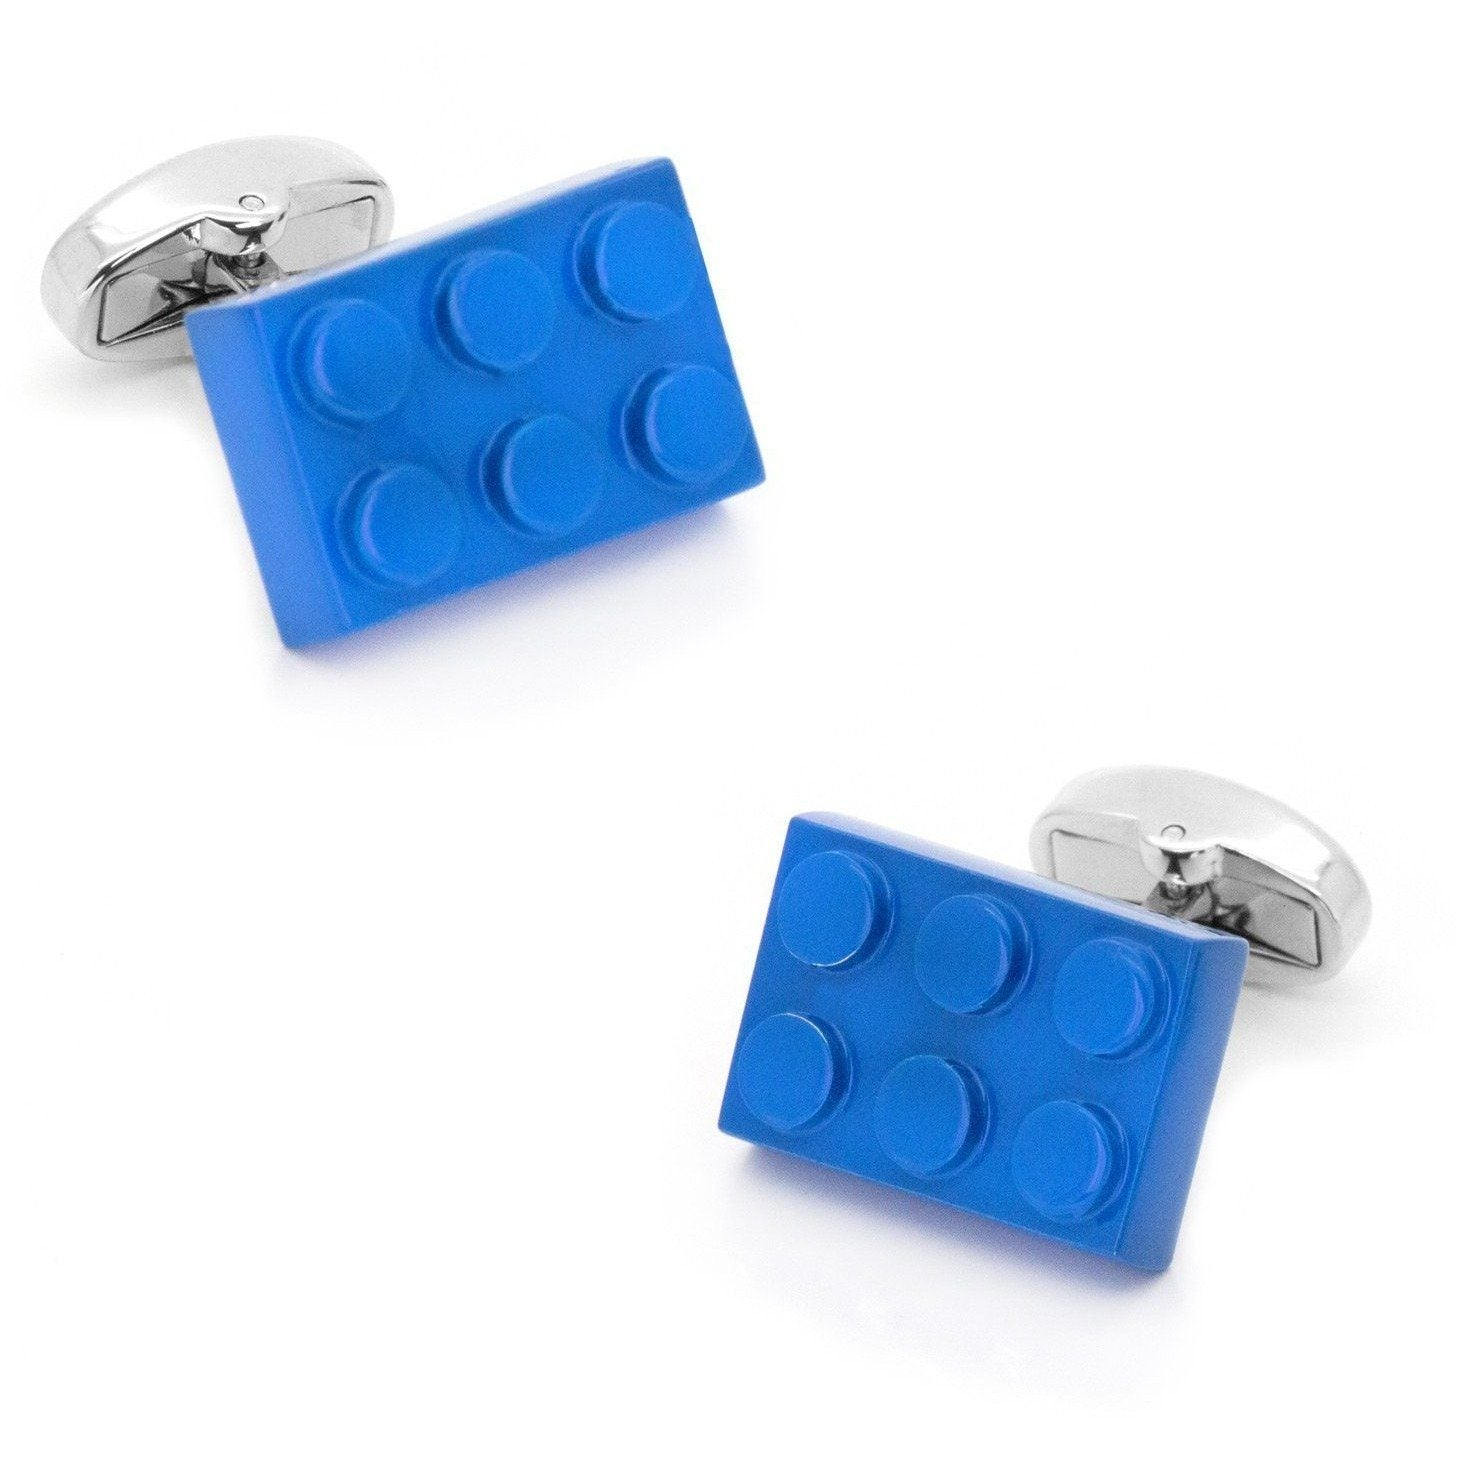 Blue Building Block Cufflinks, Novelty Cufflinks, Cuffed.com.au, CL8714, $29.00